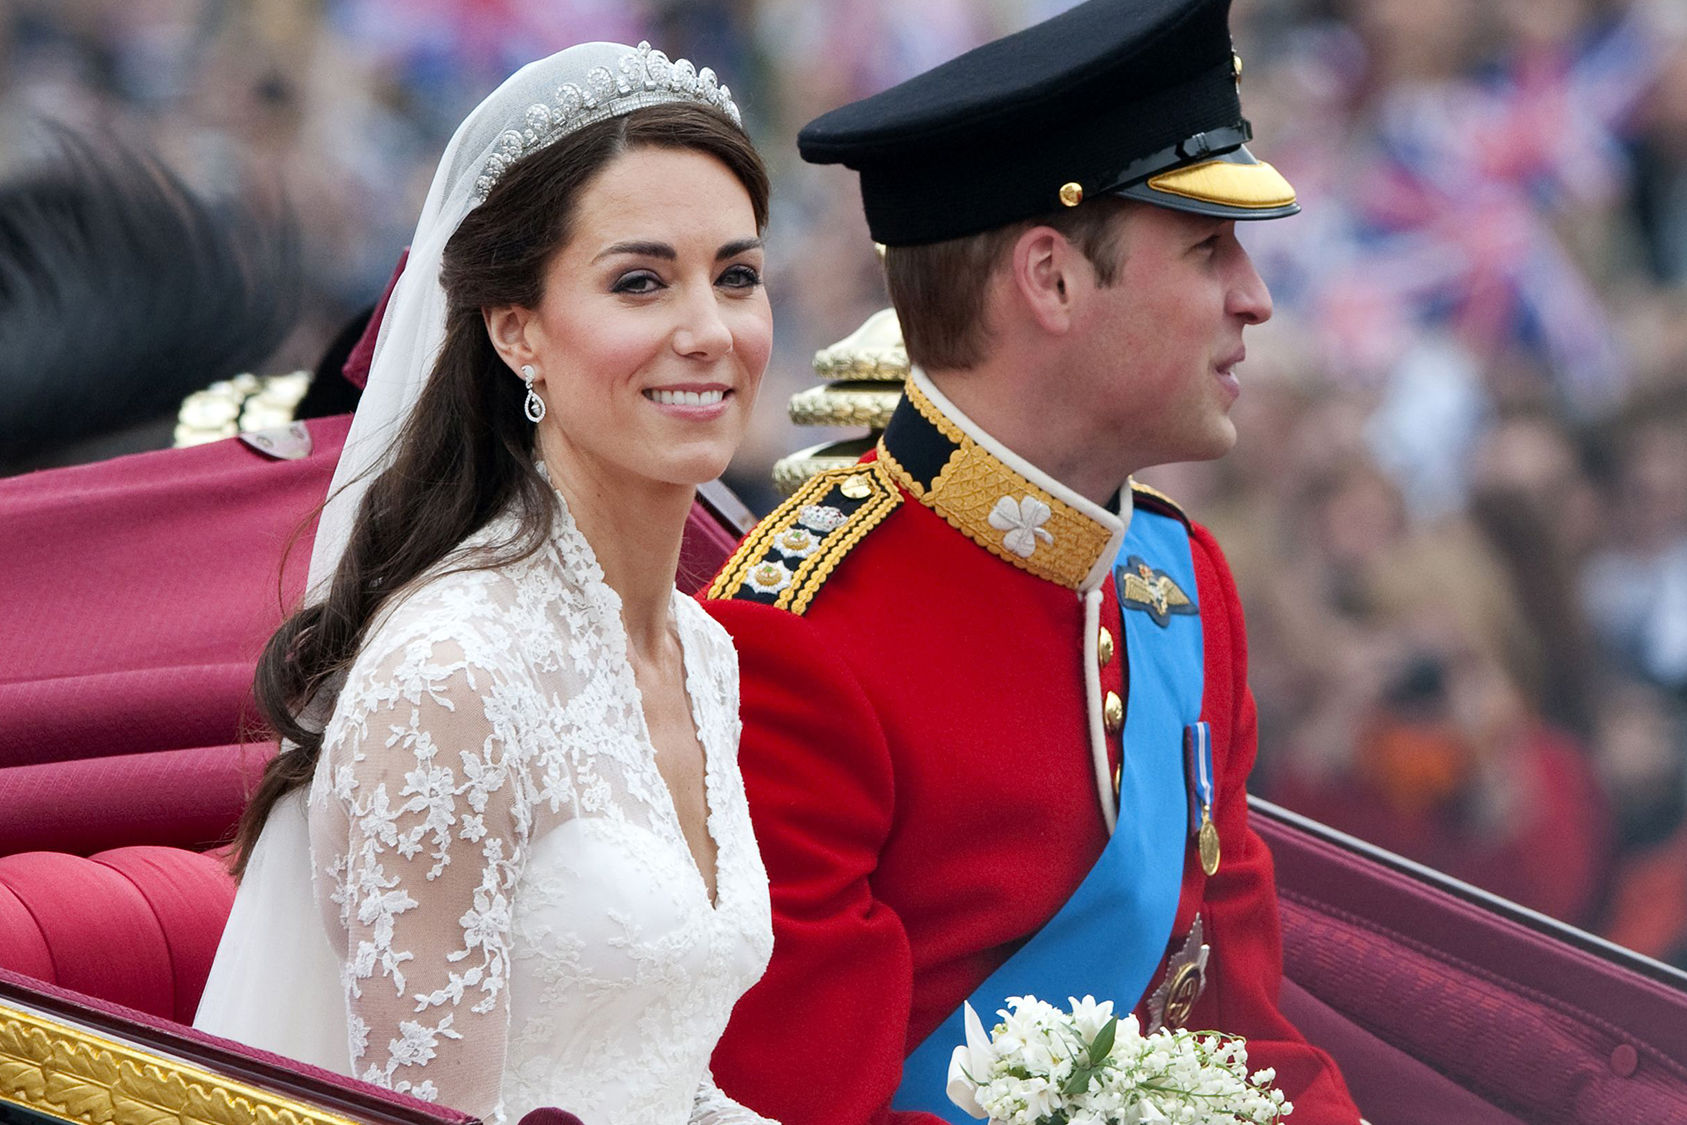 The Reason Kate Middleton and Prince William's Iconic Wedding Portrait Almost Didn't Happen